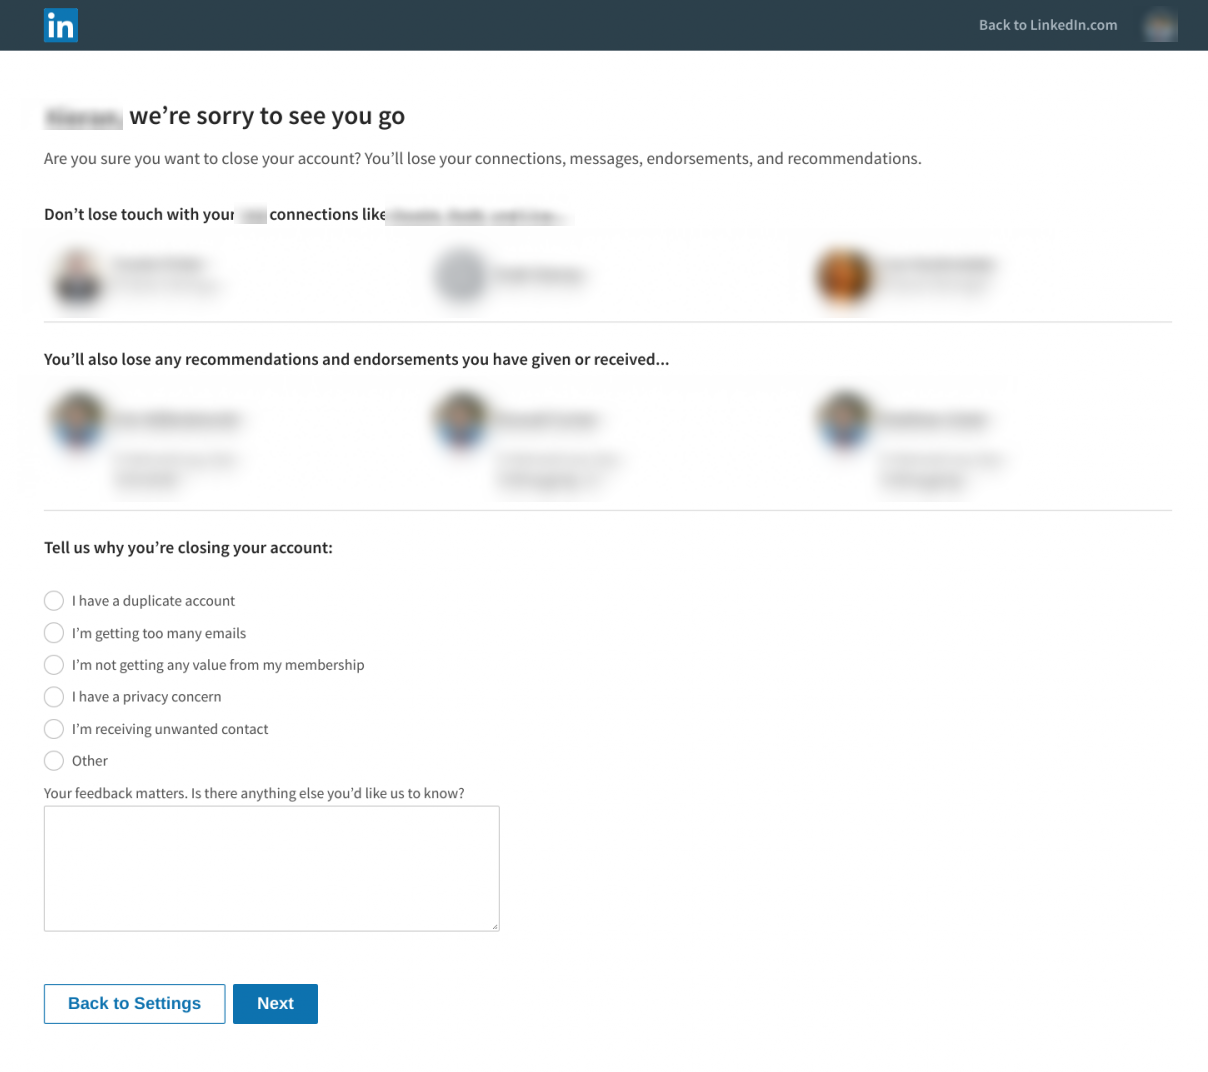 """This is the screen that users see when they cancel their LinkedIn account. It says """"wer're sorry to see you go"""" and reminds the user that they will lose their LinkedIn connections and profile."""